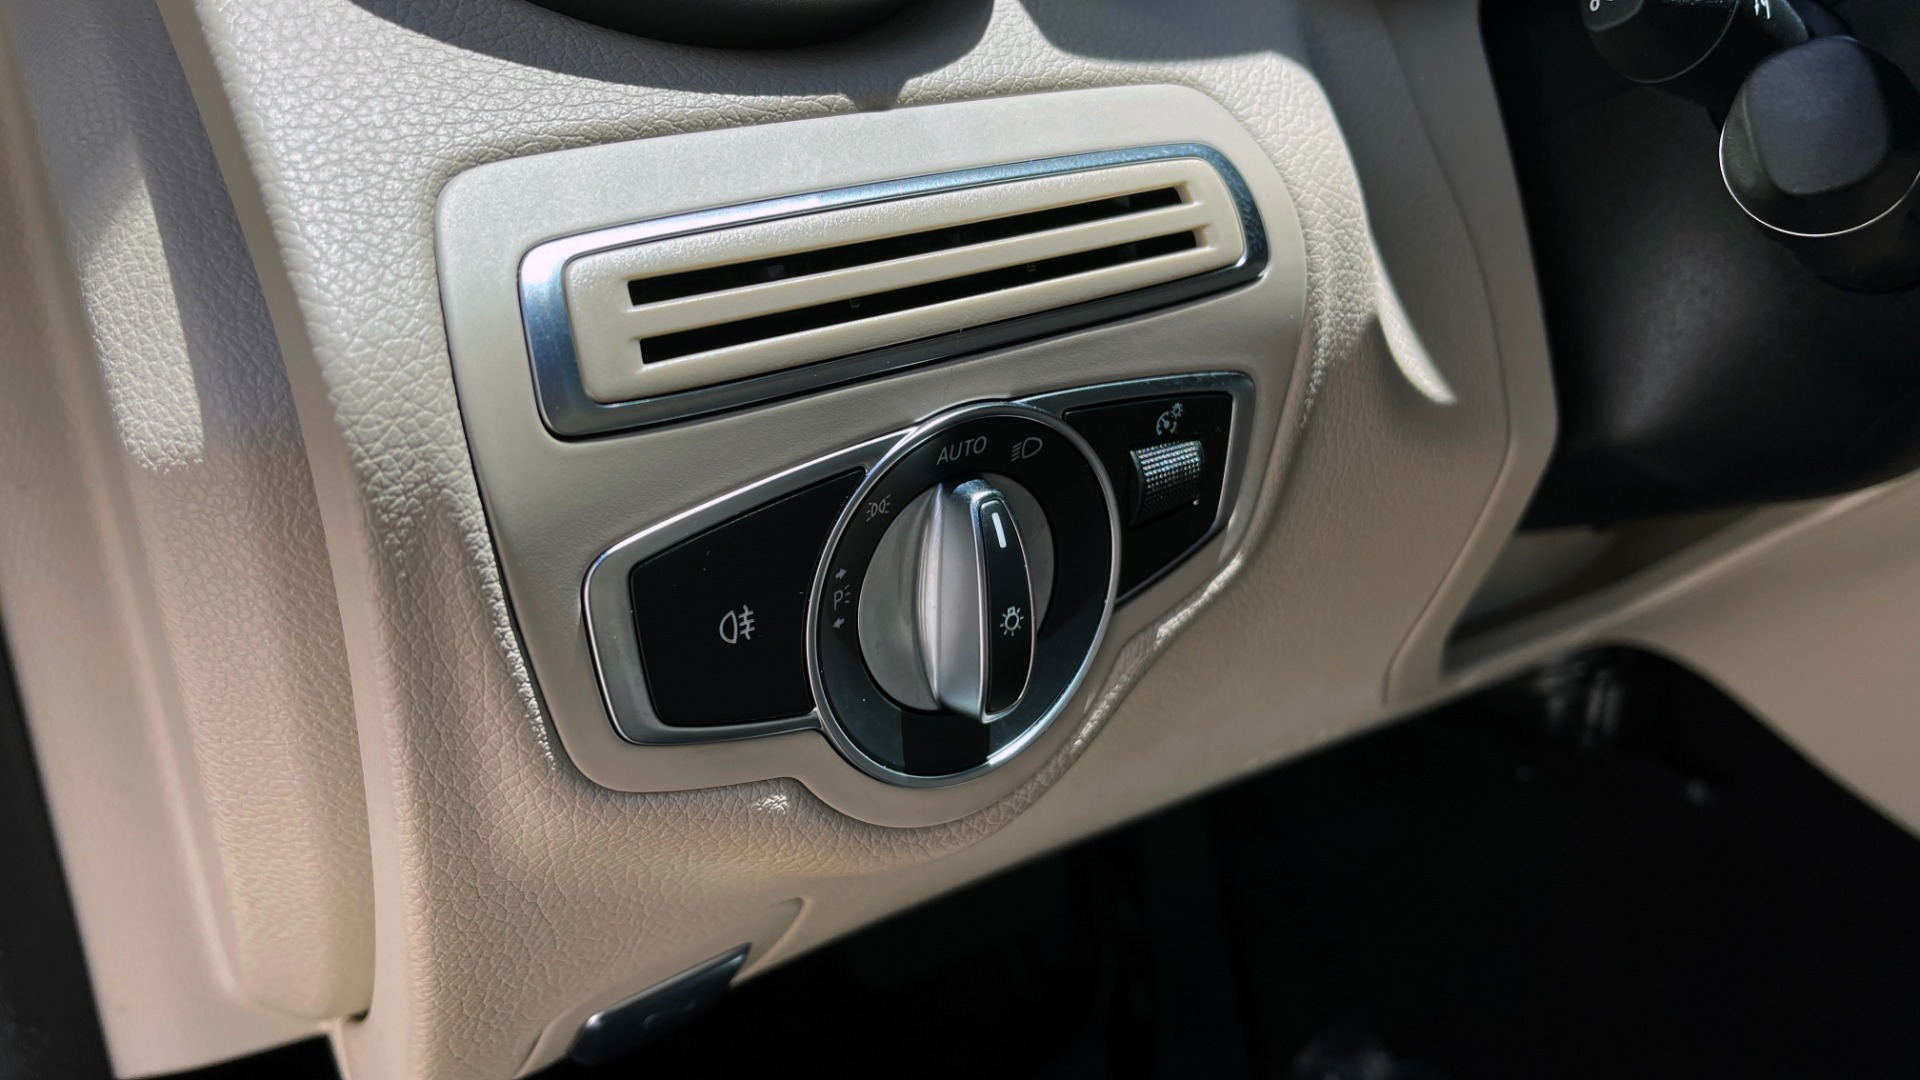 Used 2018 Mercedes-Benz C-CLASS C 300 PREMIUM / KEYLESS-GO / PANO-ROOF / BURMESTER / REARVIEW for sale $29,495 at Formula Imports in Charlotte NC 28227 34